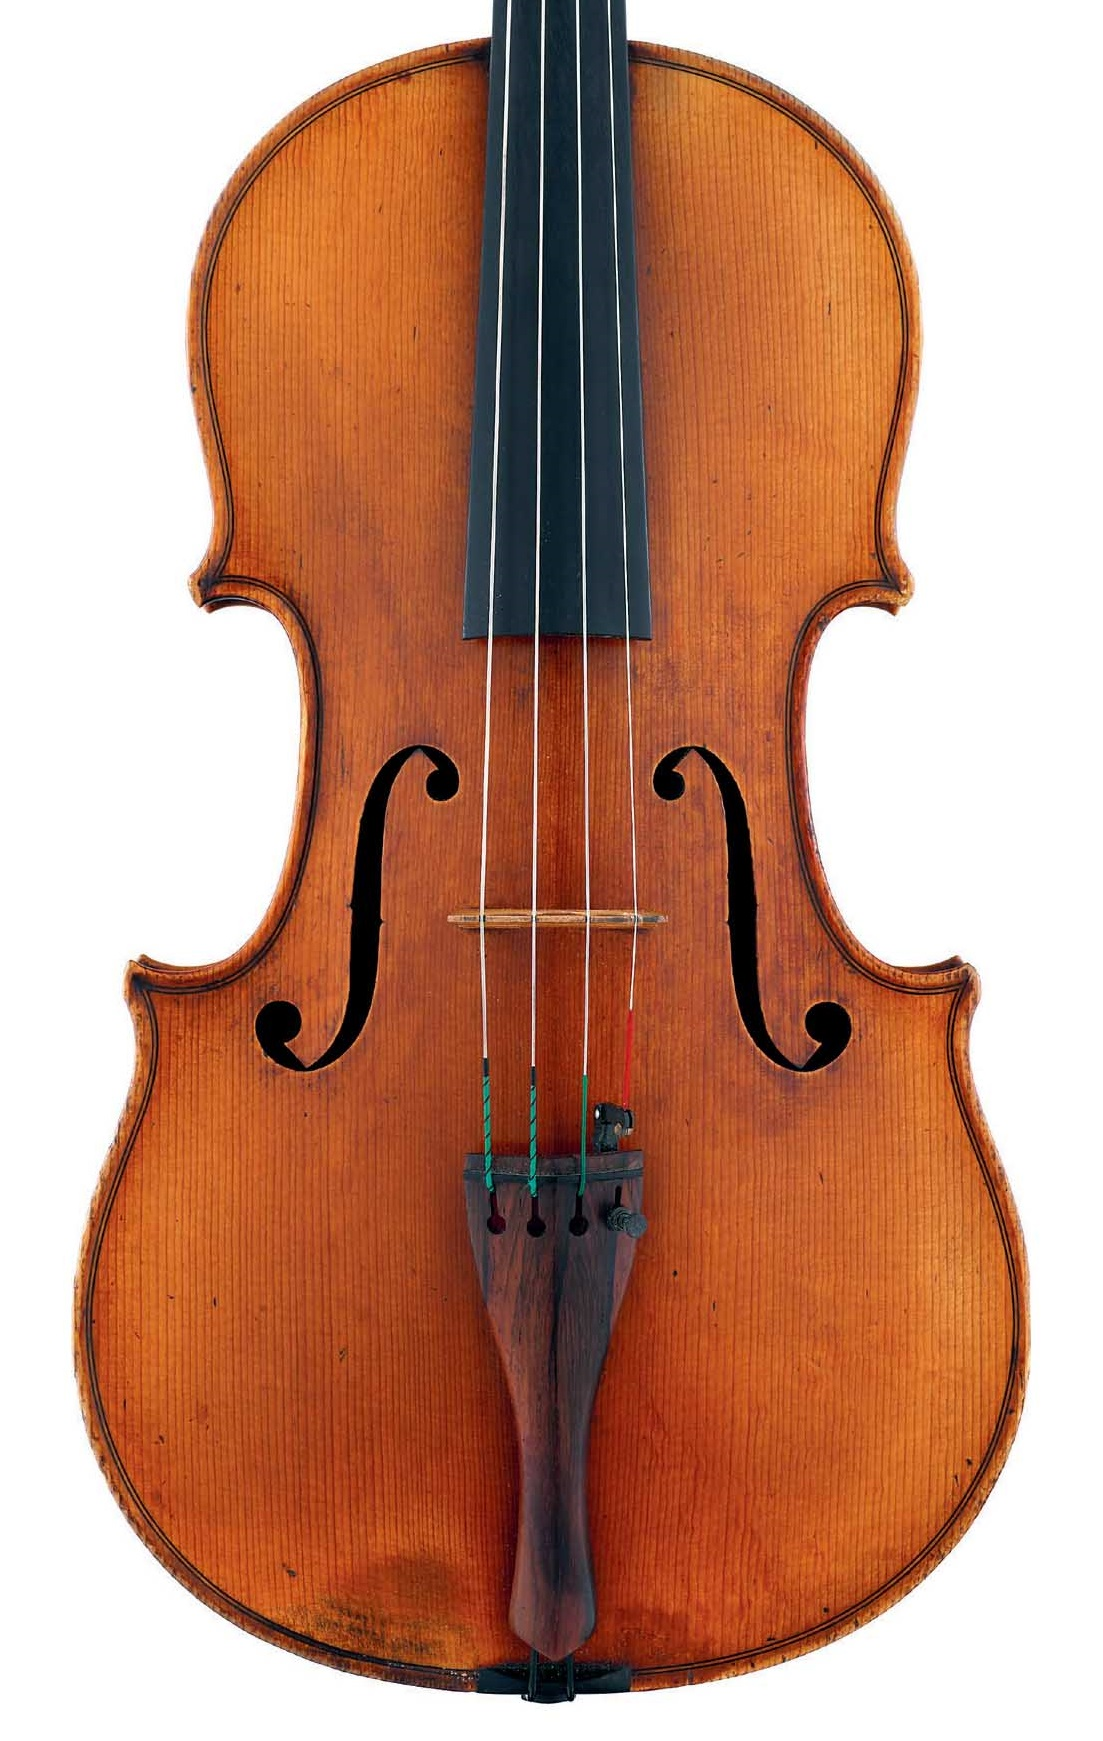 Front of decorated viola by JB Vuillaume, ex-Caraman de Chimay, dated 1865, exhibited by Ingles & Hayday at Sotheby's in 2012